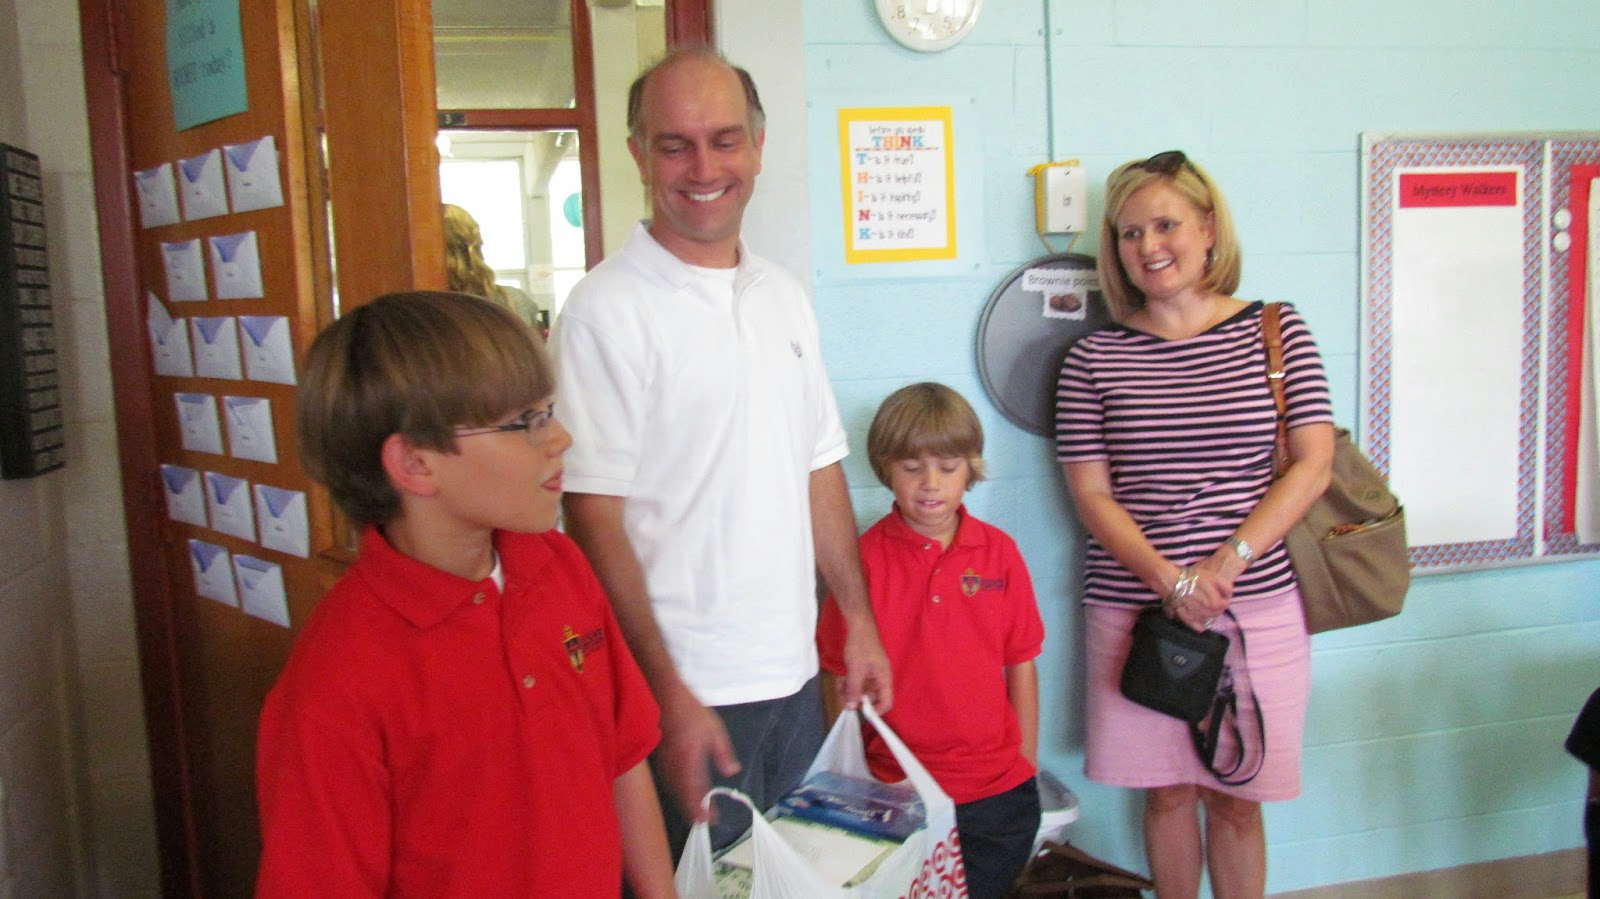 When Tanner Arrived He Let Us Know That Was Bringing Gifts Collected At His Birthday Party Recently Turned 10 Years Old